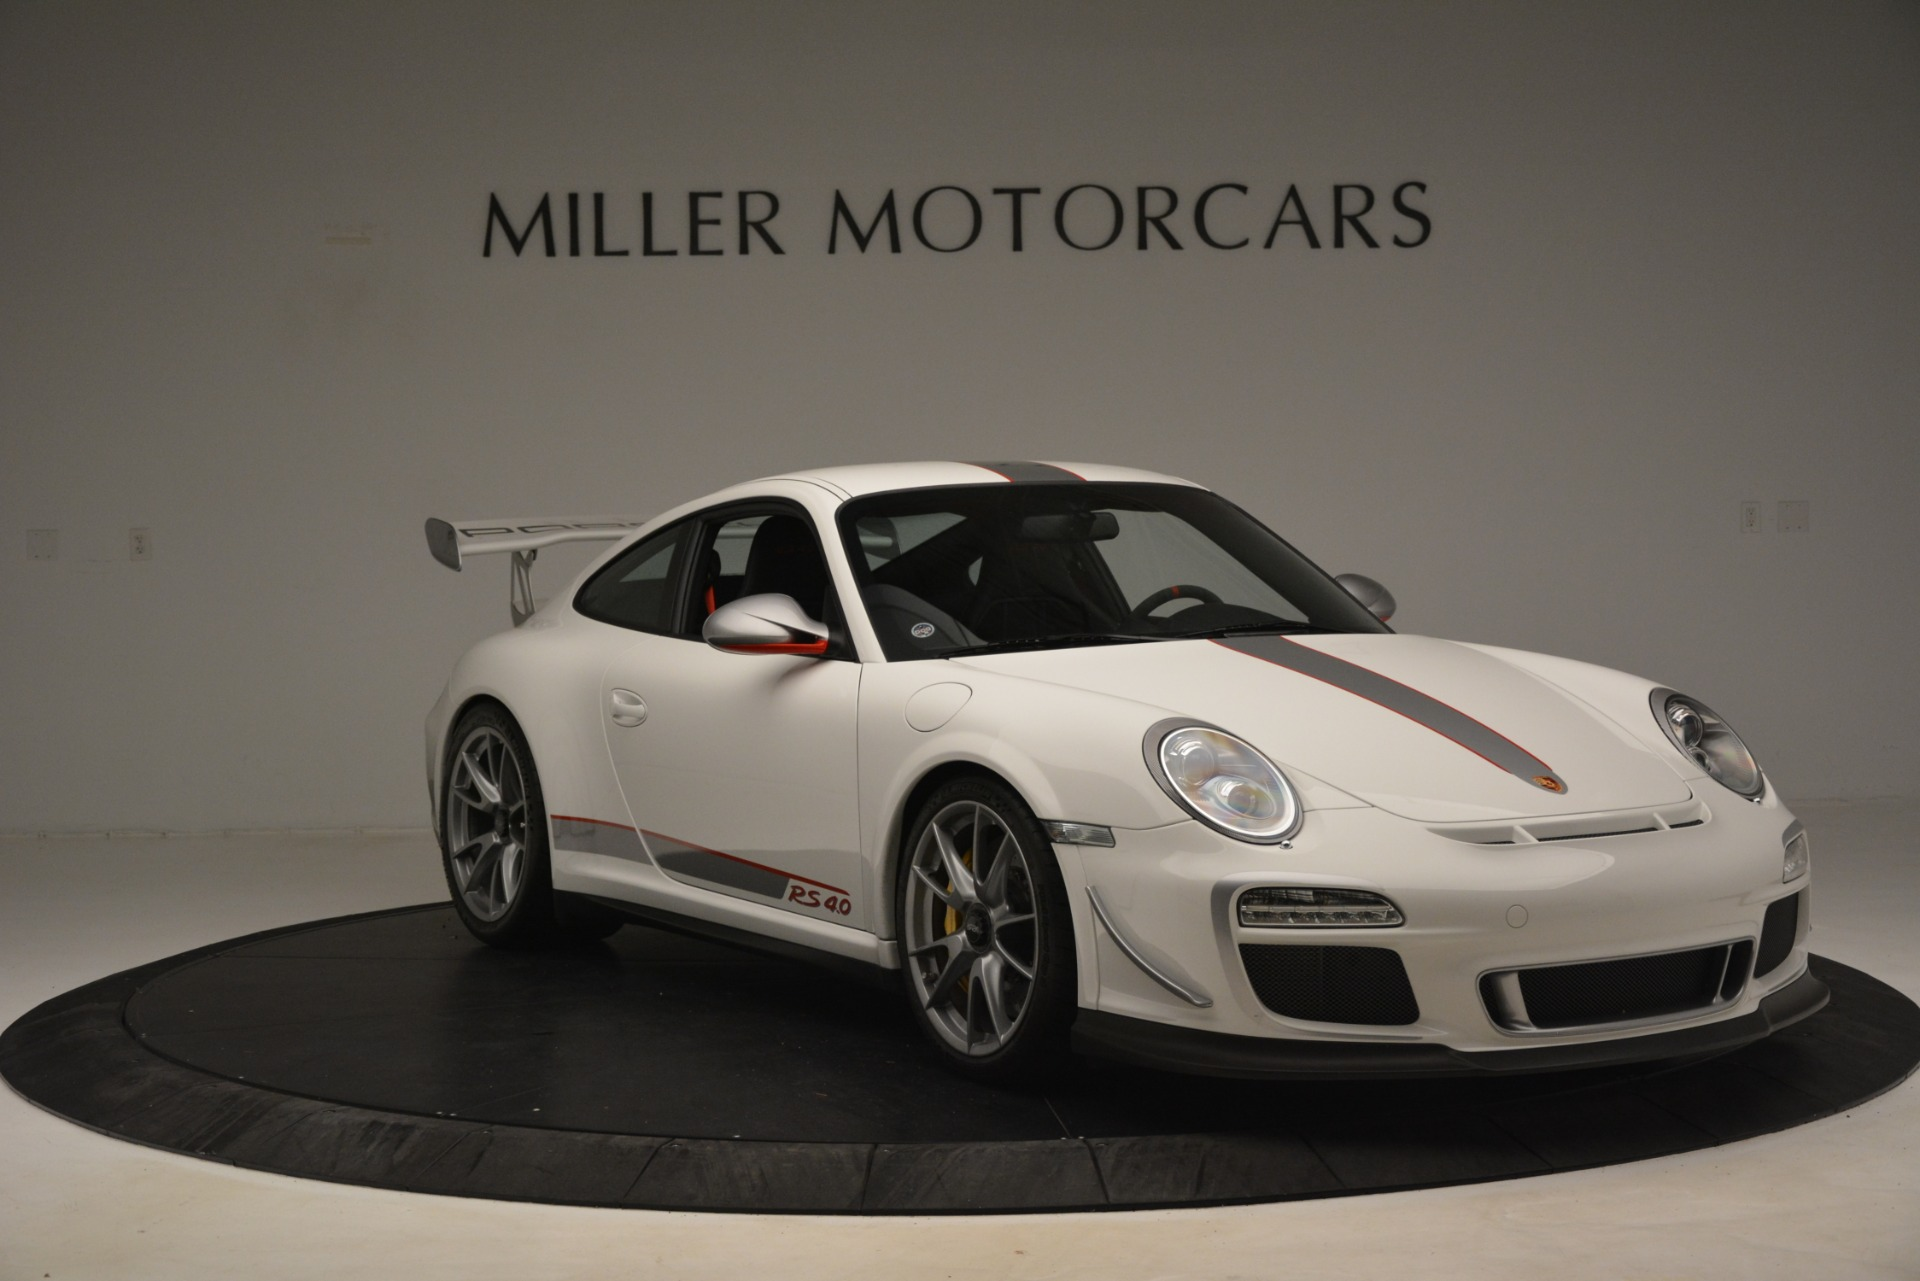 Used 2011 Porsche 911 GT3 RS 4.0 For Sale In Greenwich, CT 3188_p12